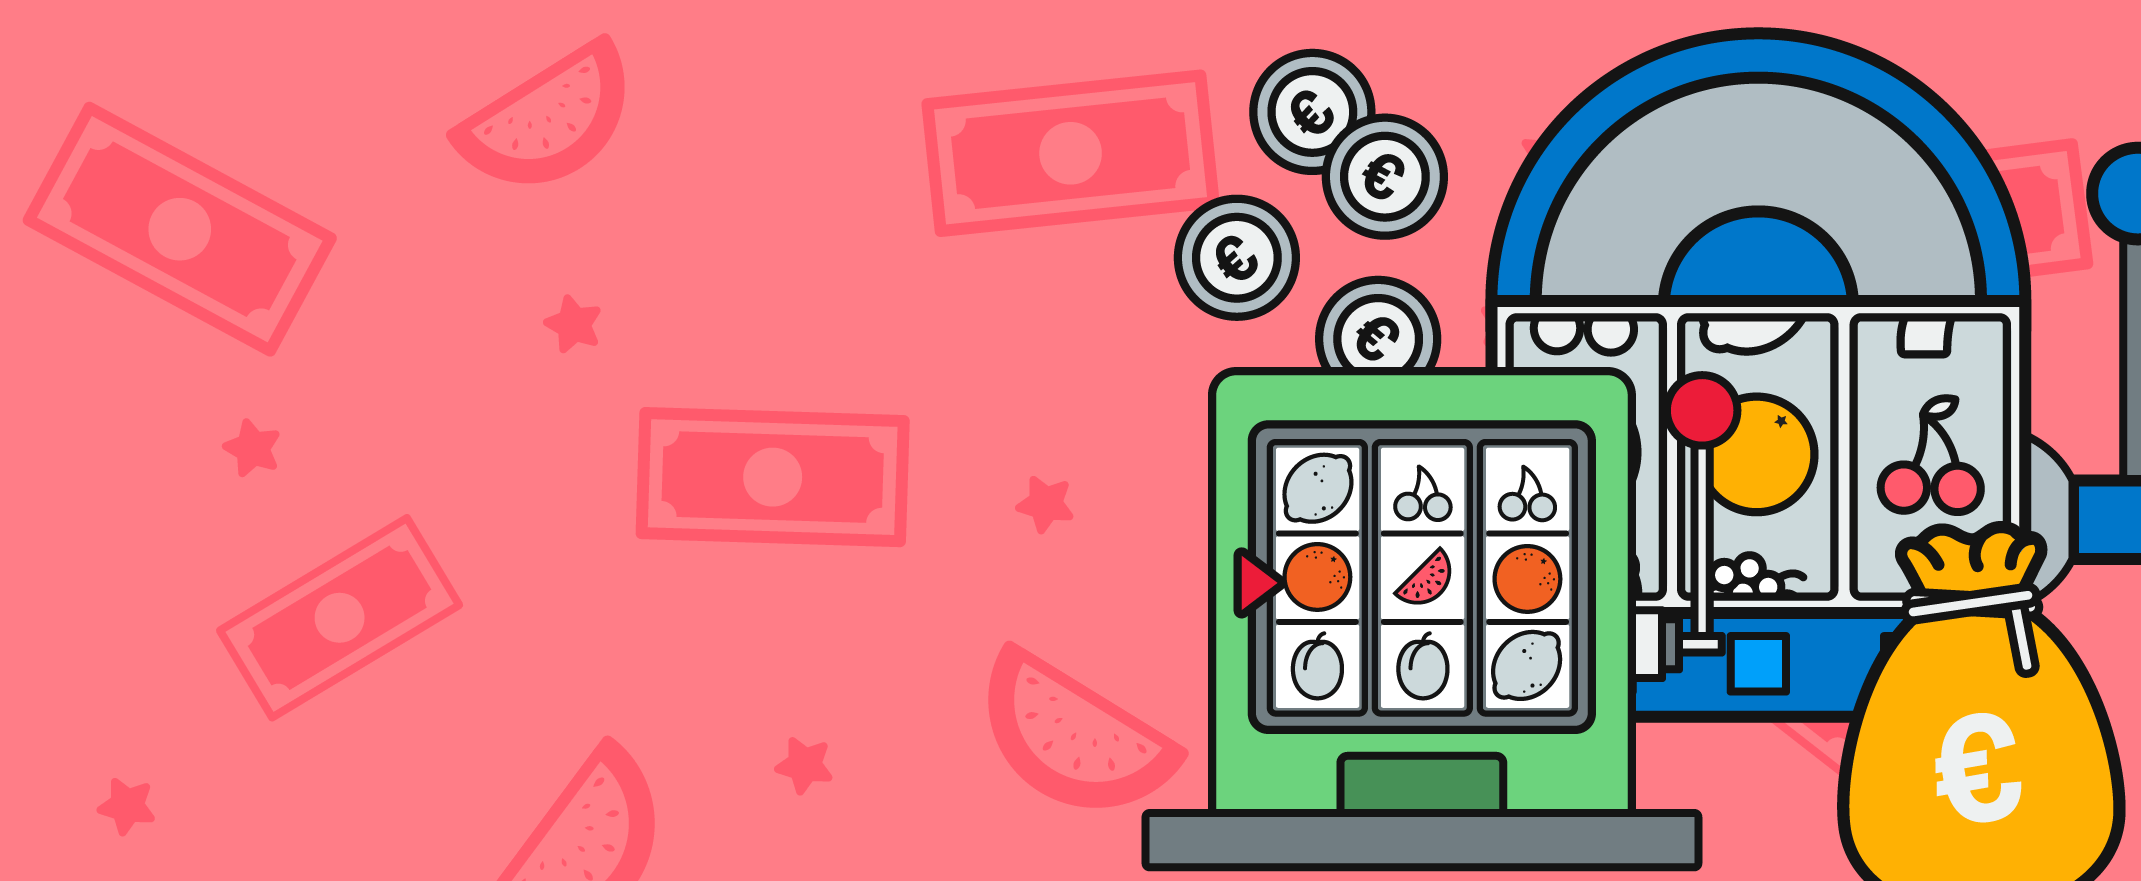 5 reasons to play online slots during quarantine